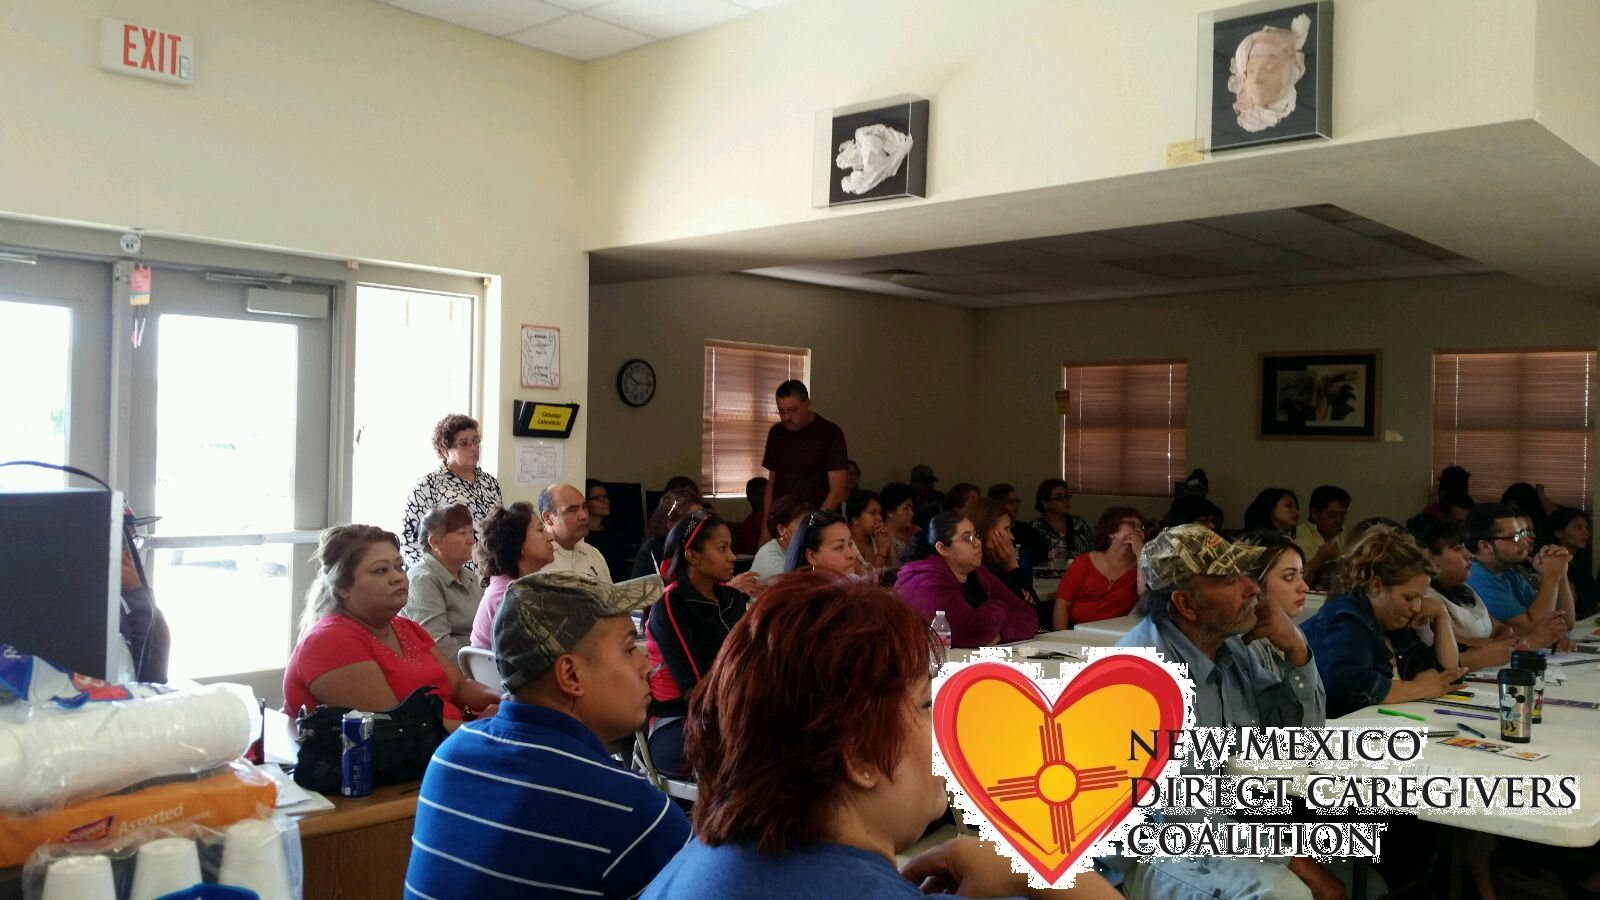 At Home Personal Care Chaparral Nm